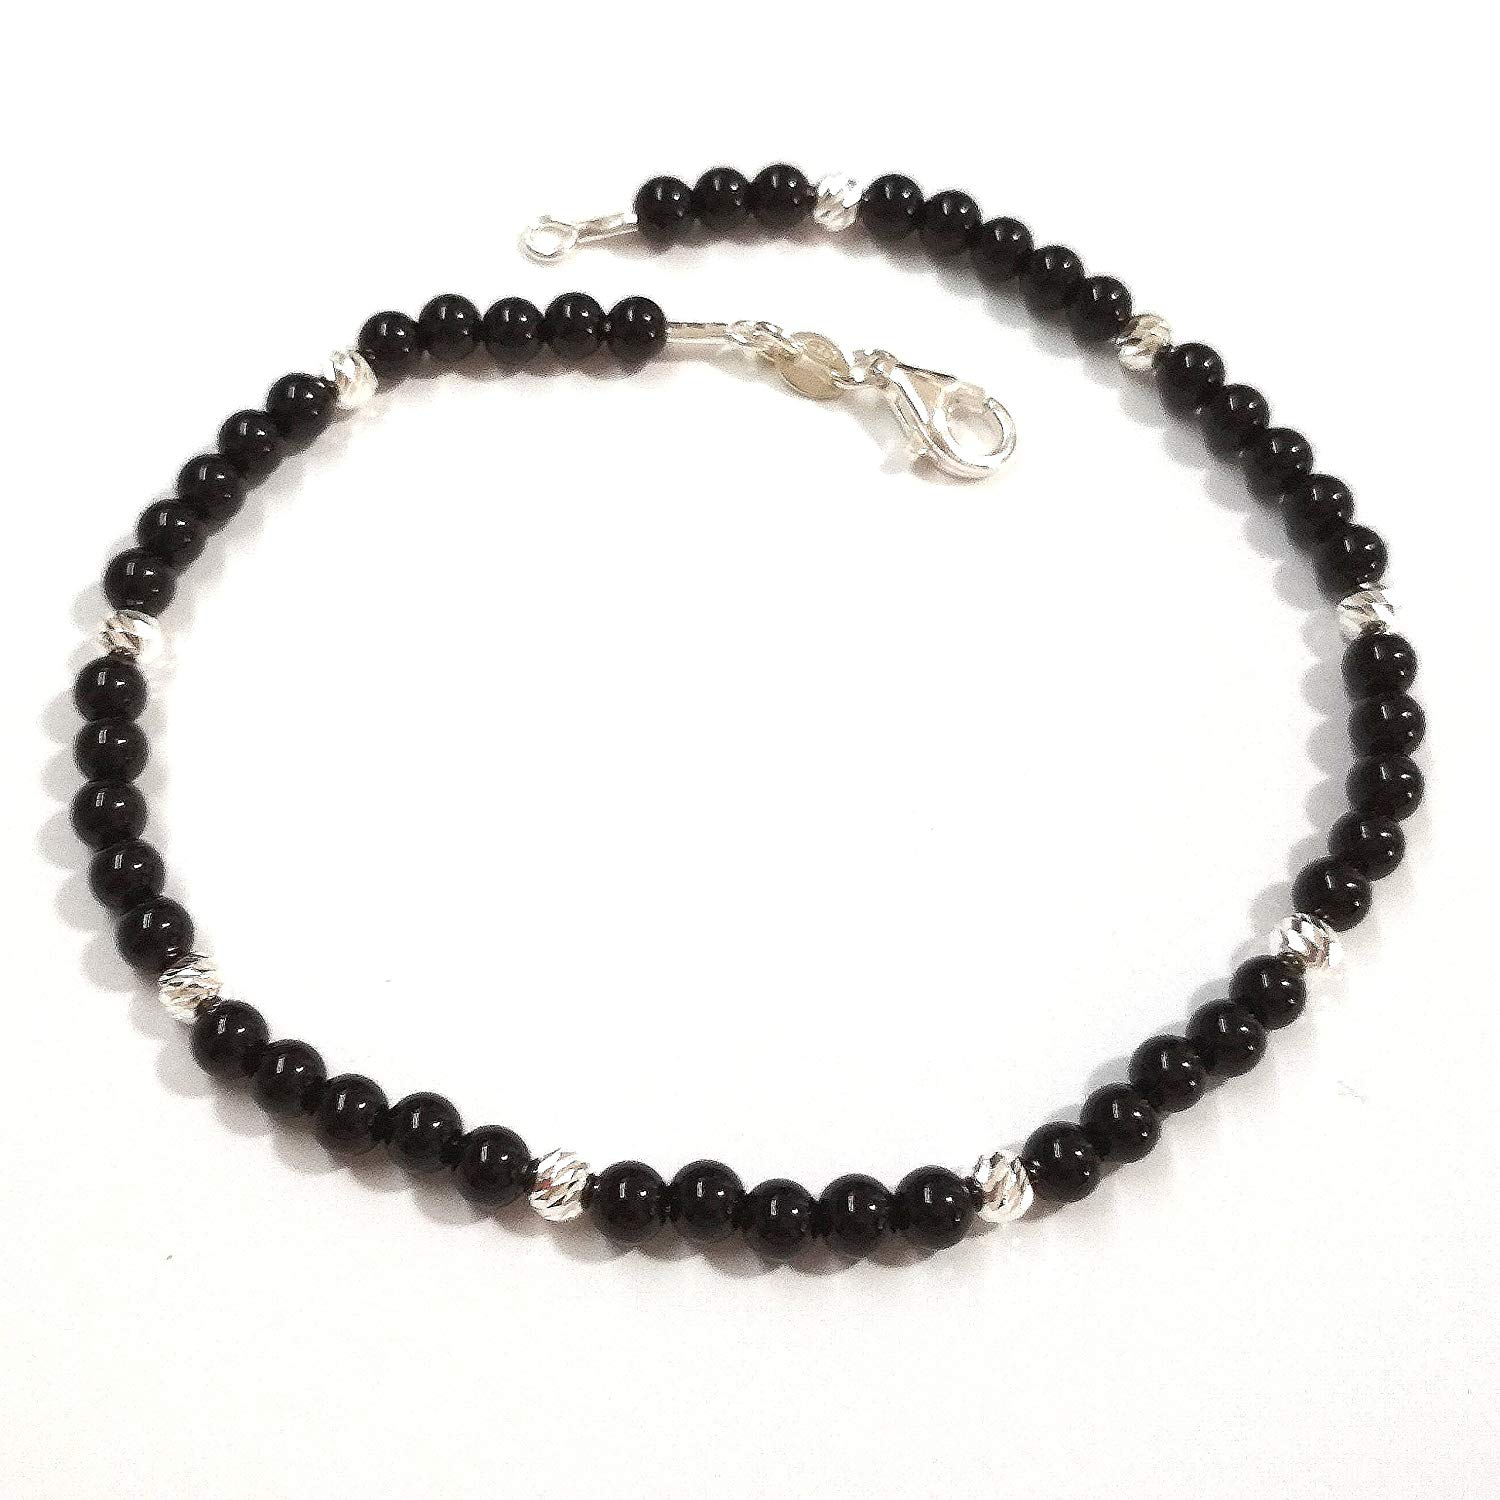 4mm Black ONYX and 925 Sterling Silver Laser Cut Beads Beaded BRACELET. Unisex. Made to your size.